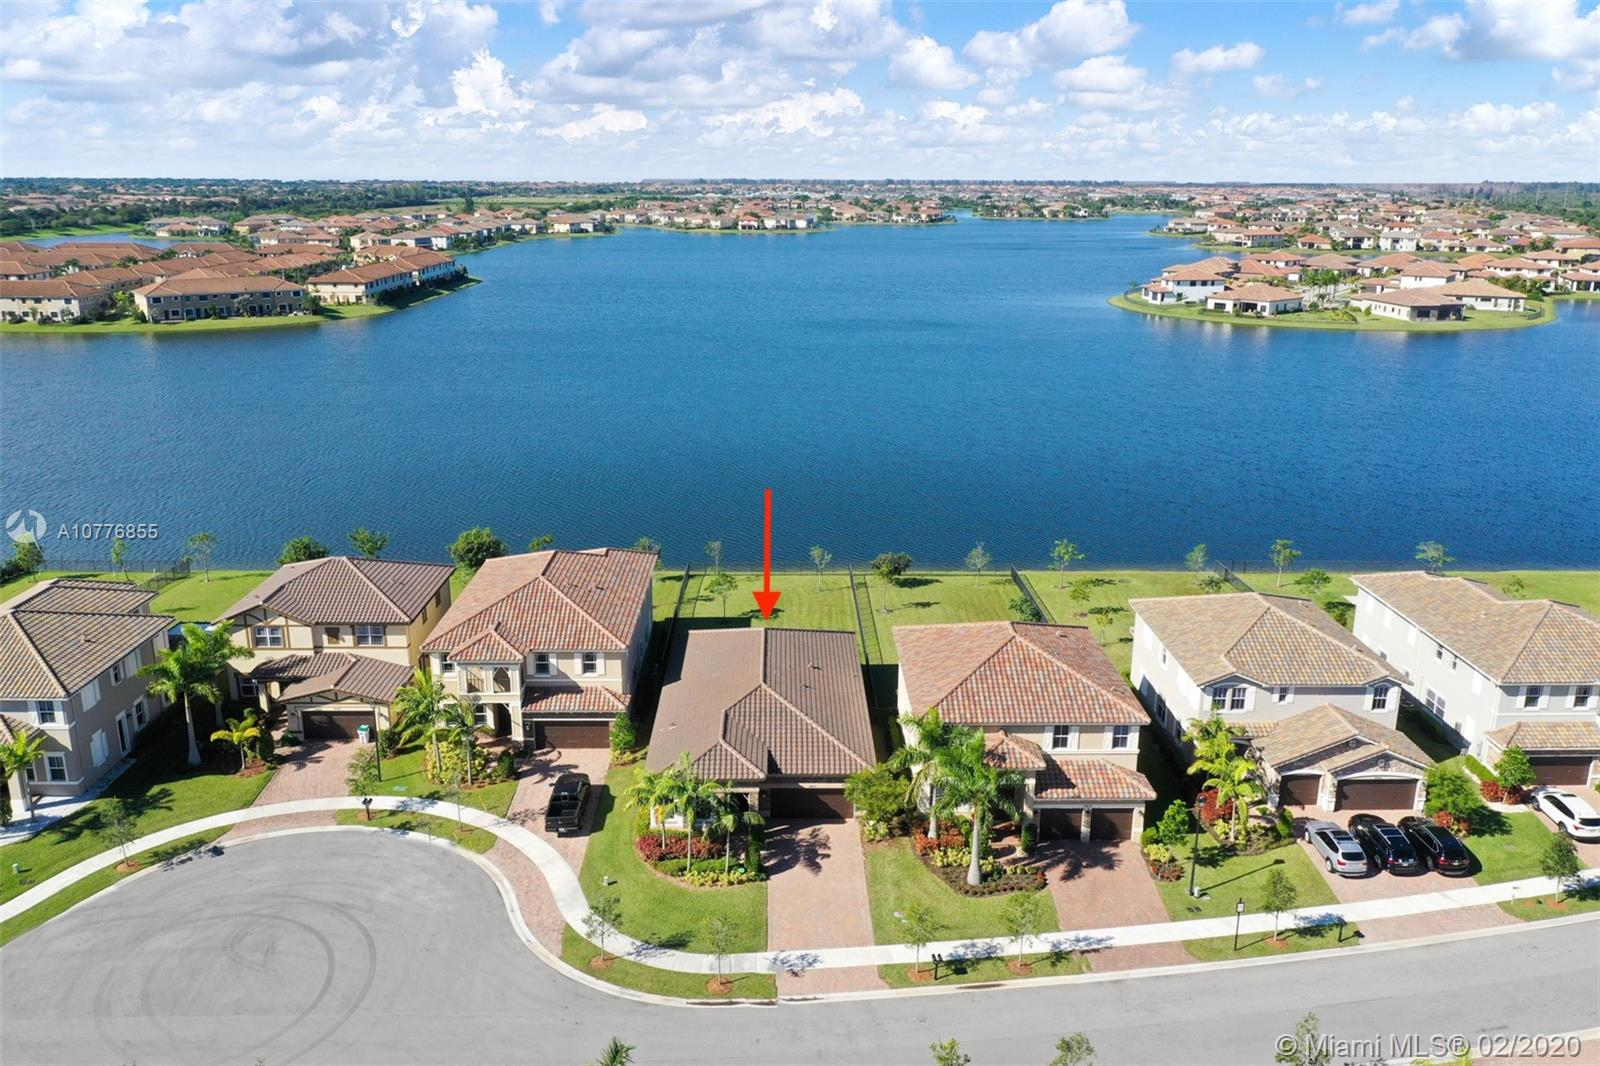 Welcome to this beautiful 4bdrm, 3bath lake front home located in the prestigious, gated community of MiraLago at Parkland. Enter the home through a covered entryway & step into this new construction (2017) home that offers innovative features, wide lake views & amazing sunsets! Full Security System & hurricane impact windows/doors. Home offers a private laundry room, tile & carpet throughout, 2 car garage, family room, dinning room & huge, fenced backyard! Kitchen offers an all natural gas stove, double oven, wood cabinets, granite countertops & overlooks the Family Room with access to the backyard. Master suite offers 2 walk-in closets, master bath w/ dual sinks, marble countertop, glass enclosed shower, & a Roman tub. Great amenities including a club house, pool, fitness center & more!